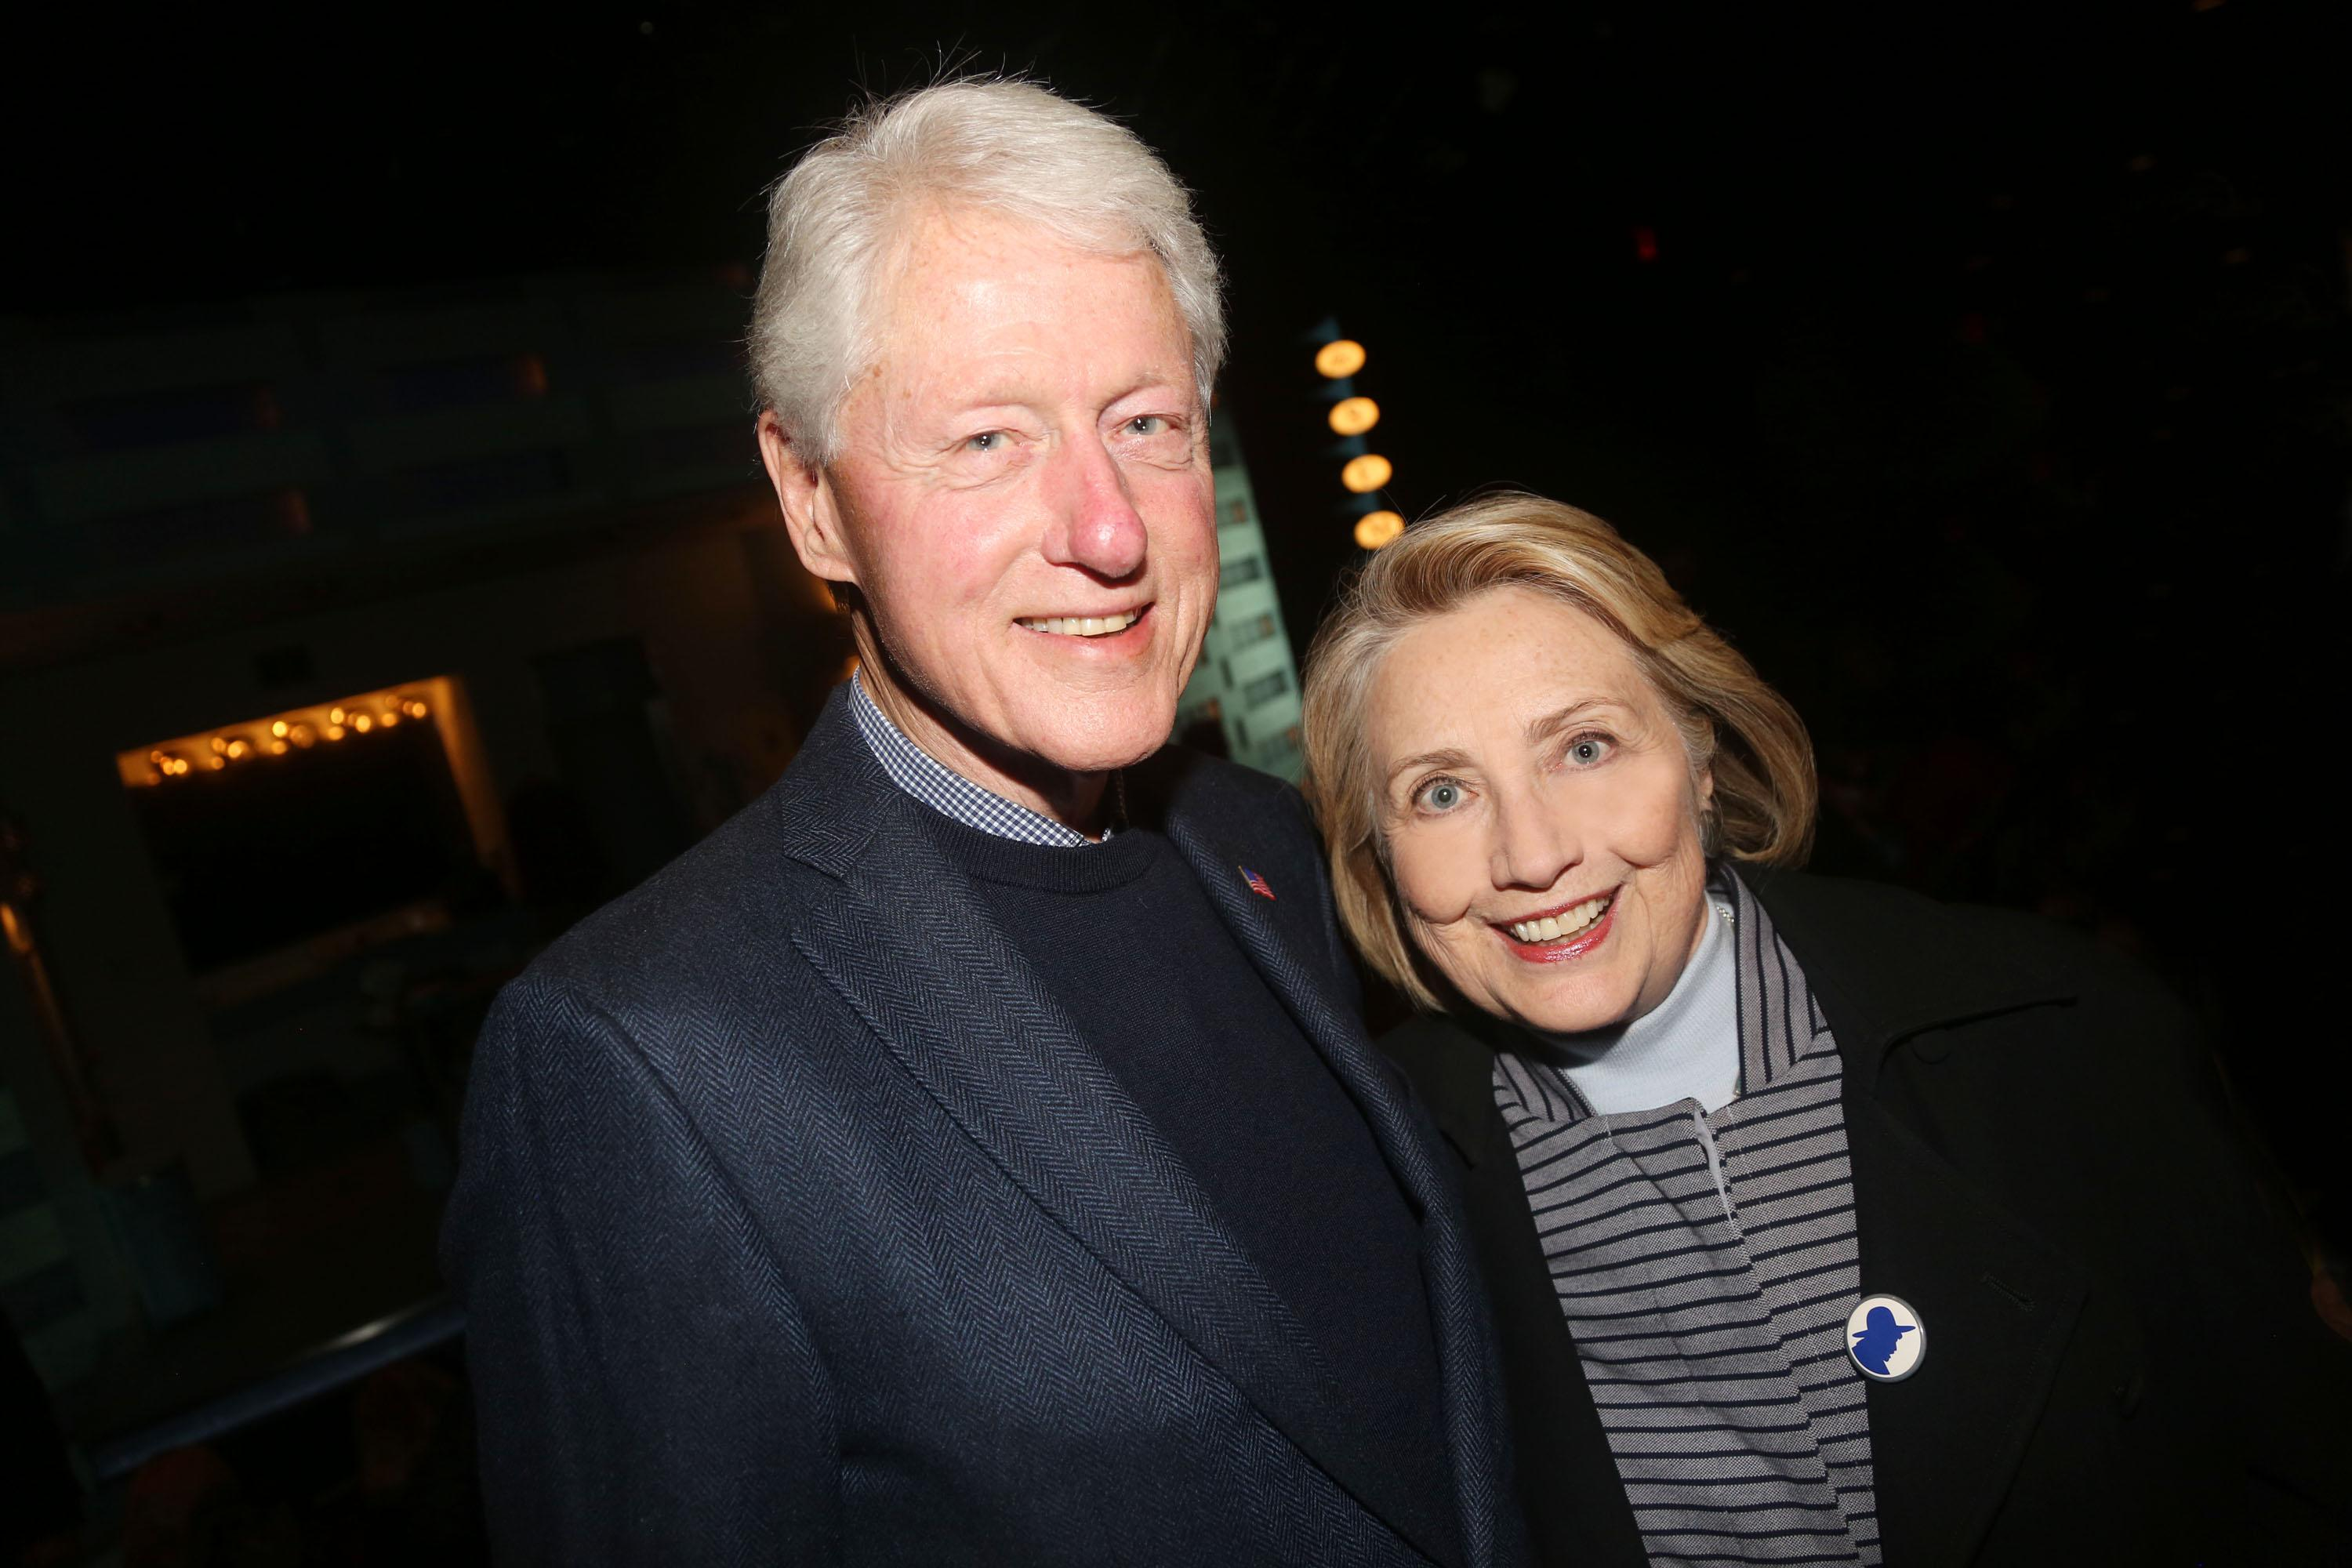 Hillary Clinton says it was 'emotionally draining' revisiting Bill's affair with Monica Lewinsky for new docuseries